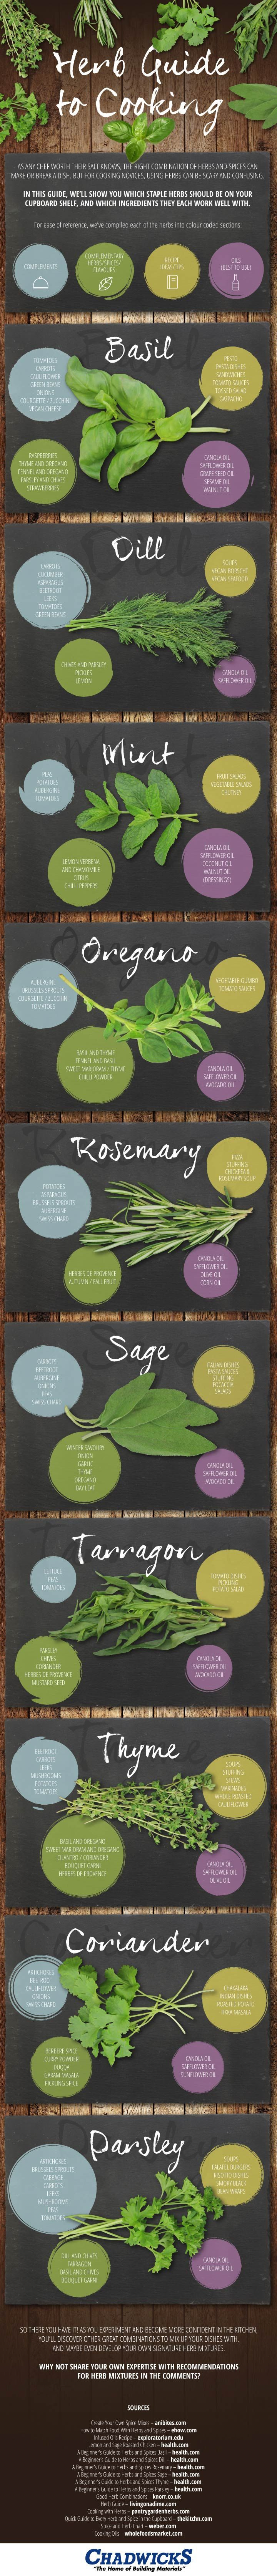 [Infographic] A Guide to Plant-Powered Cooking with Herbs - 10 staple herbs that everyone should have in their kitchen {The Food Revolution Network/John and Ocean Robbins}